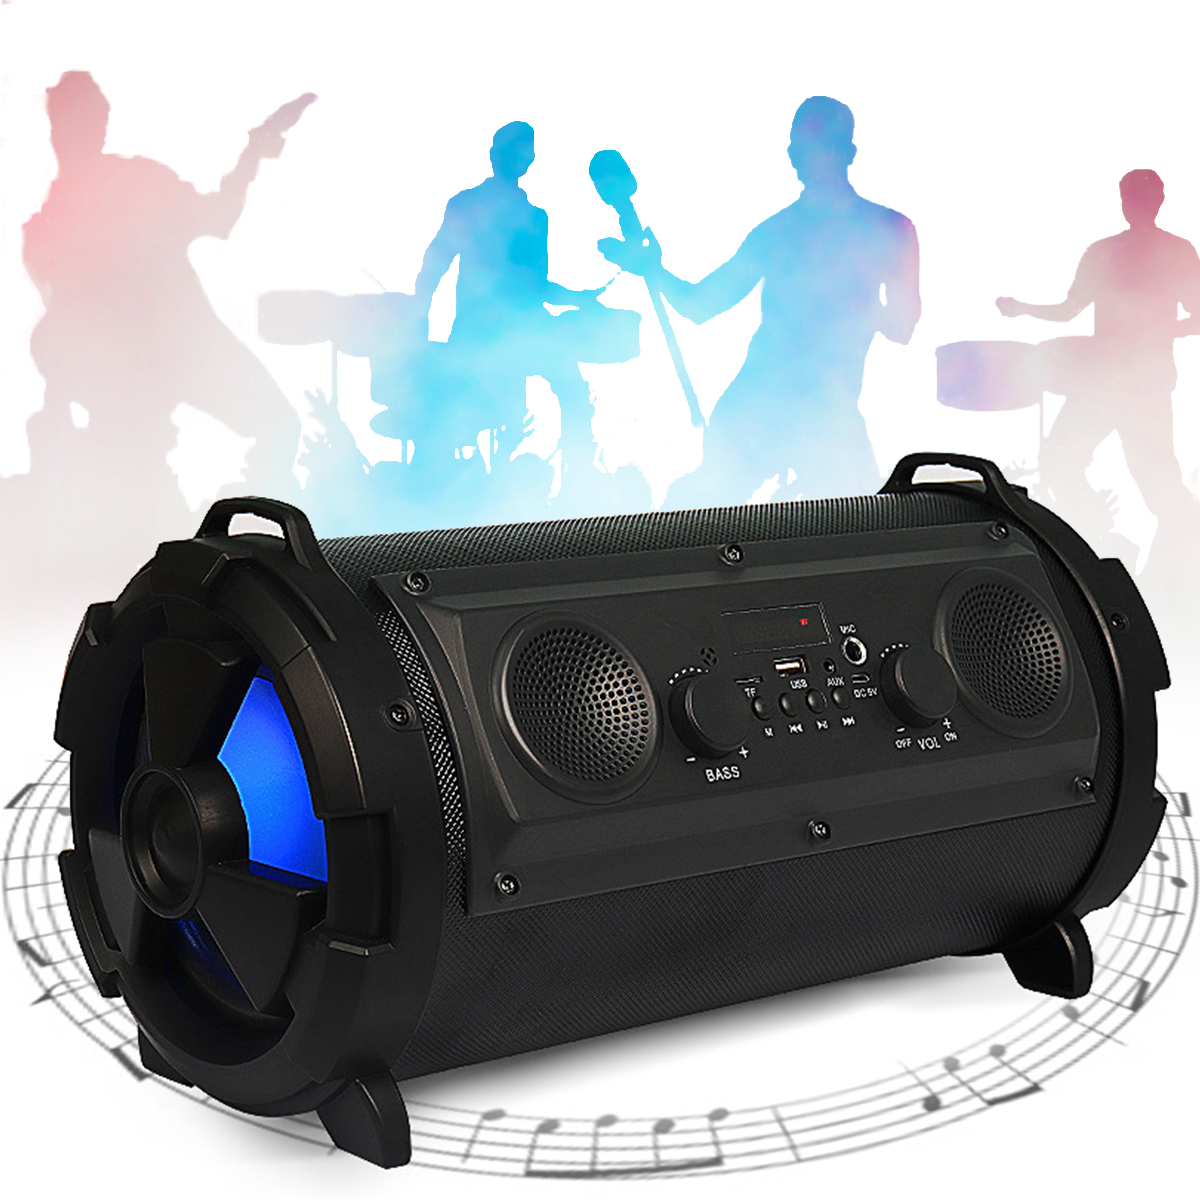 Portable Wireless Bluetooth Speaker Subwoofer With Misic Super Bass Speakers HIFI Stereo TF Card Outdoor Loundspeaker